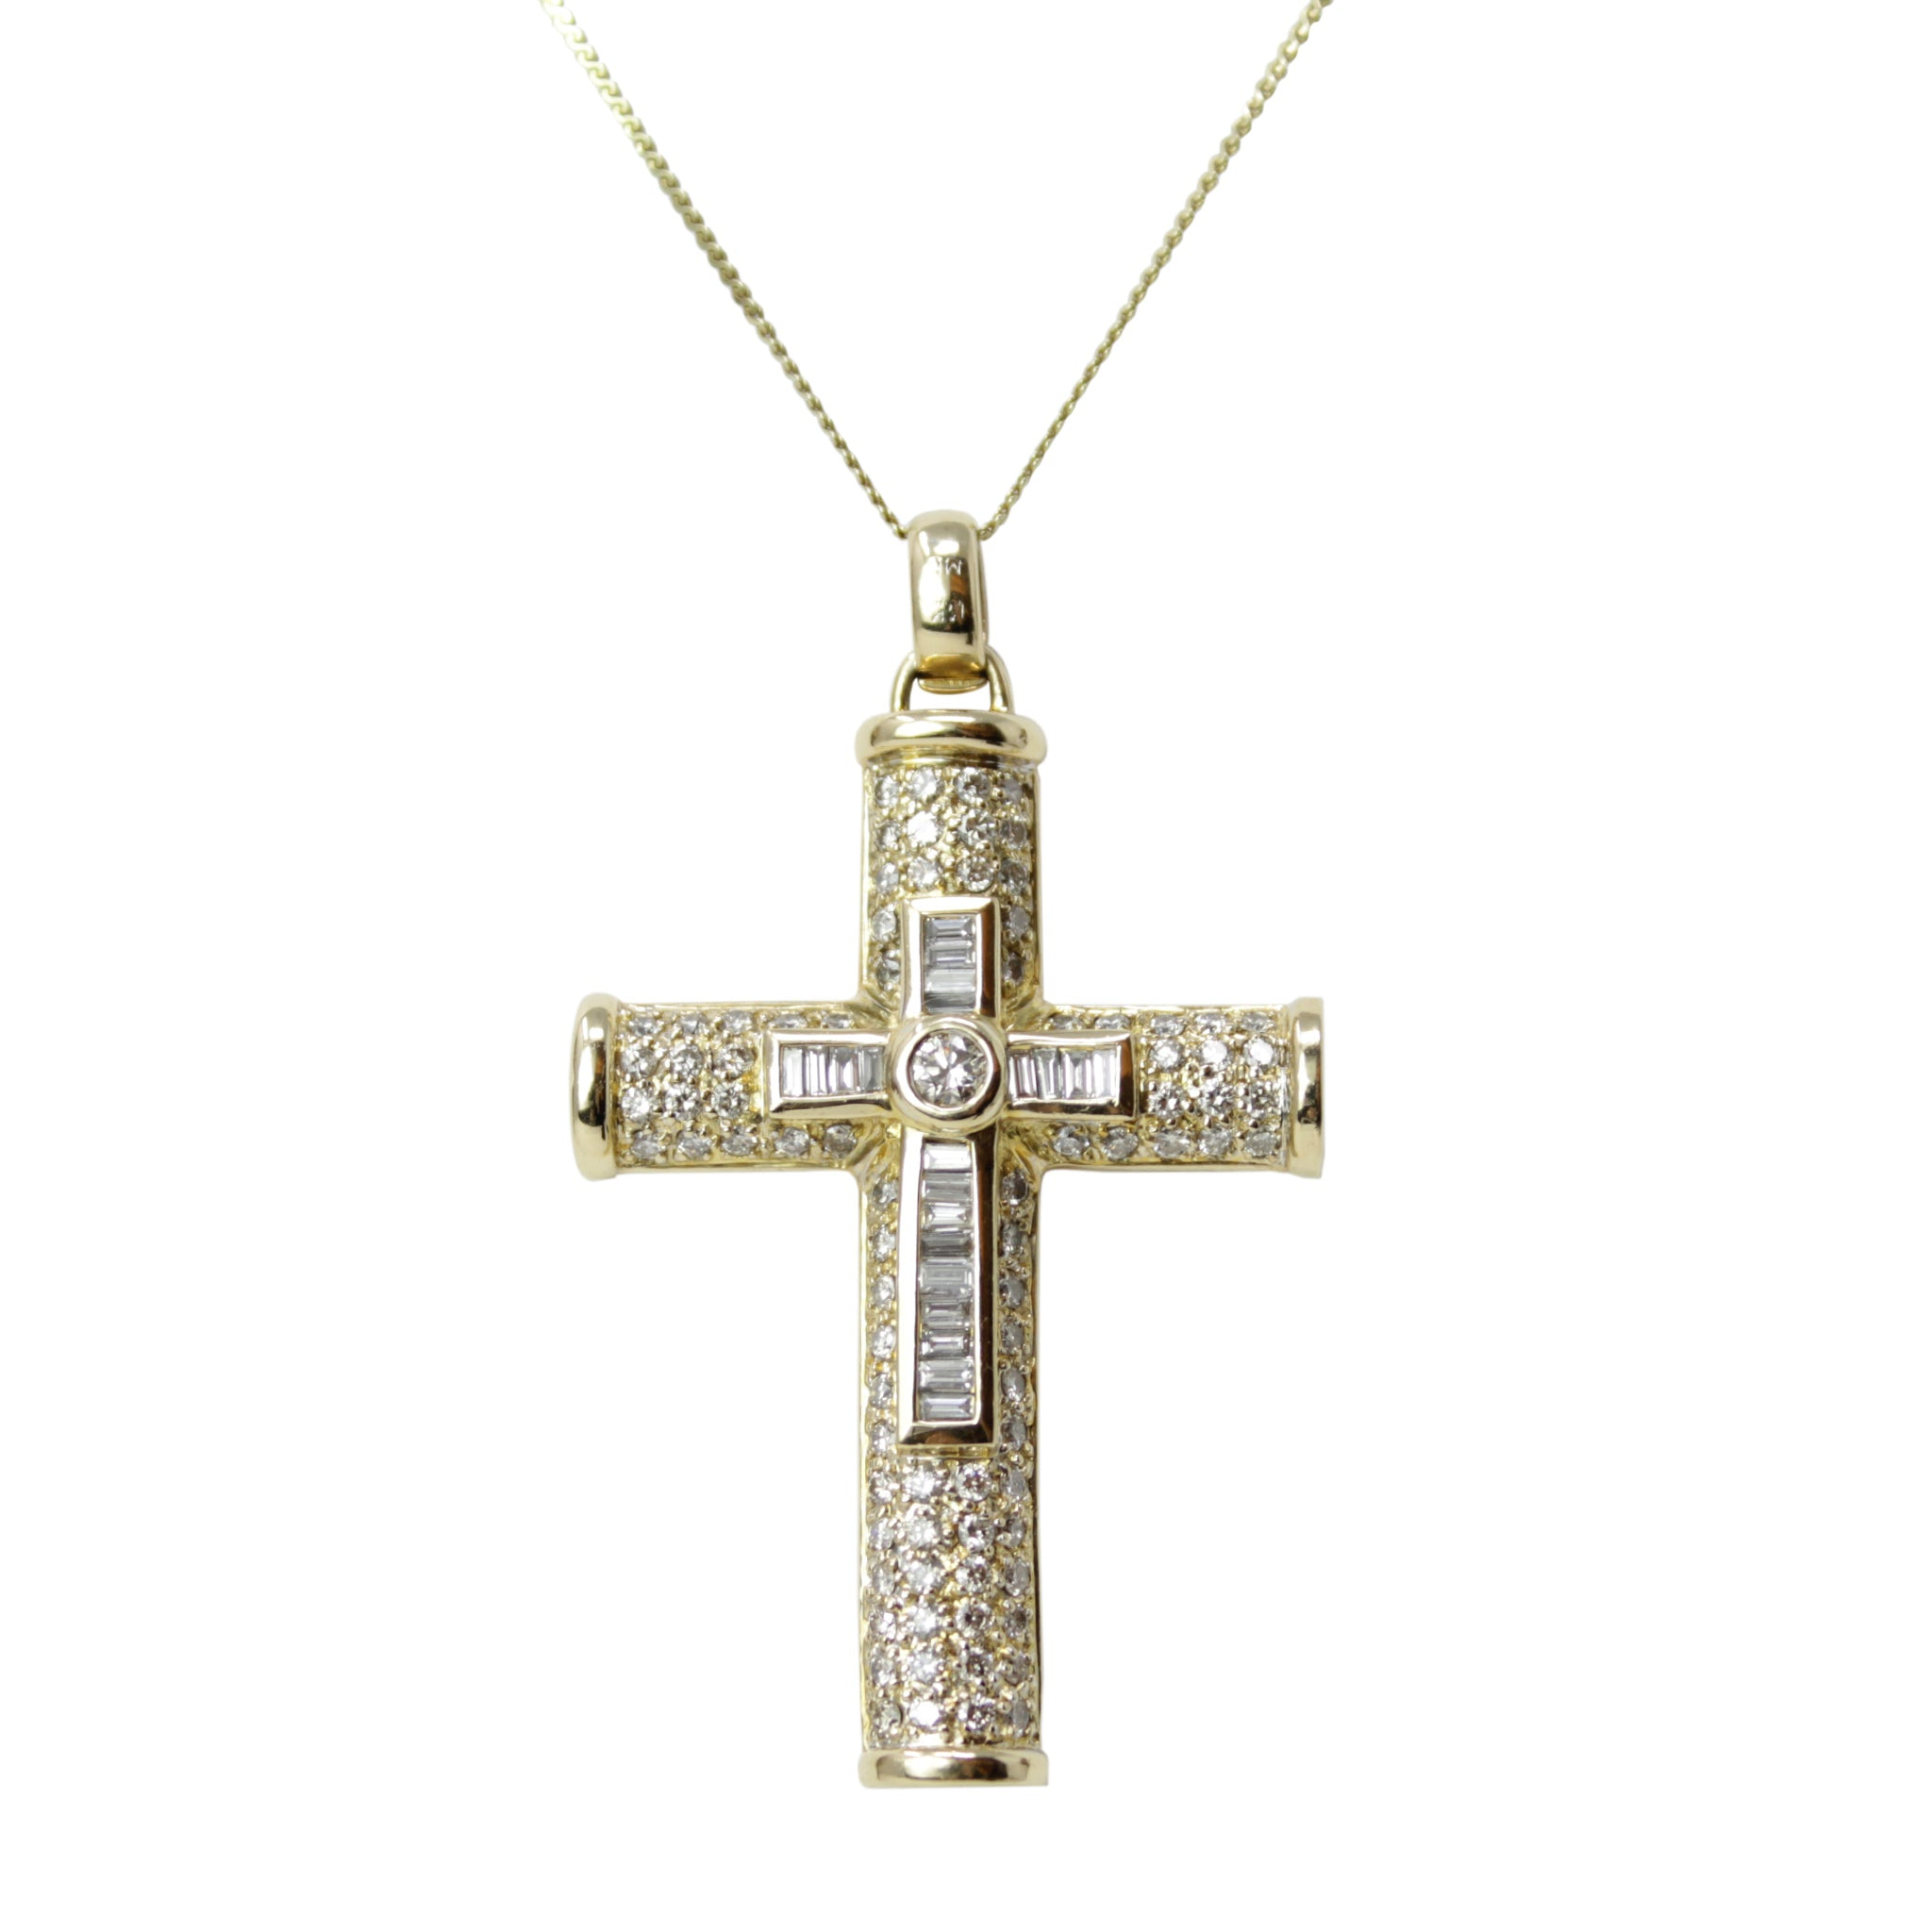 Cross of Support and Reflection - 14K Yellow Gold Men's Diamond Cross Pendant on 18K Yellow Gold Chain Necklace